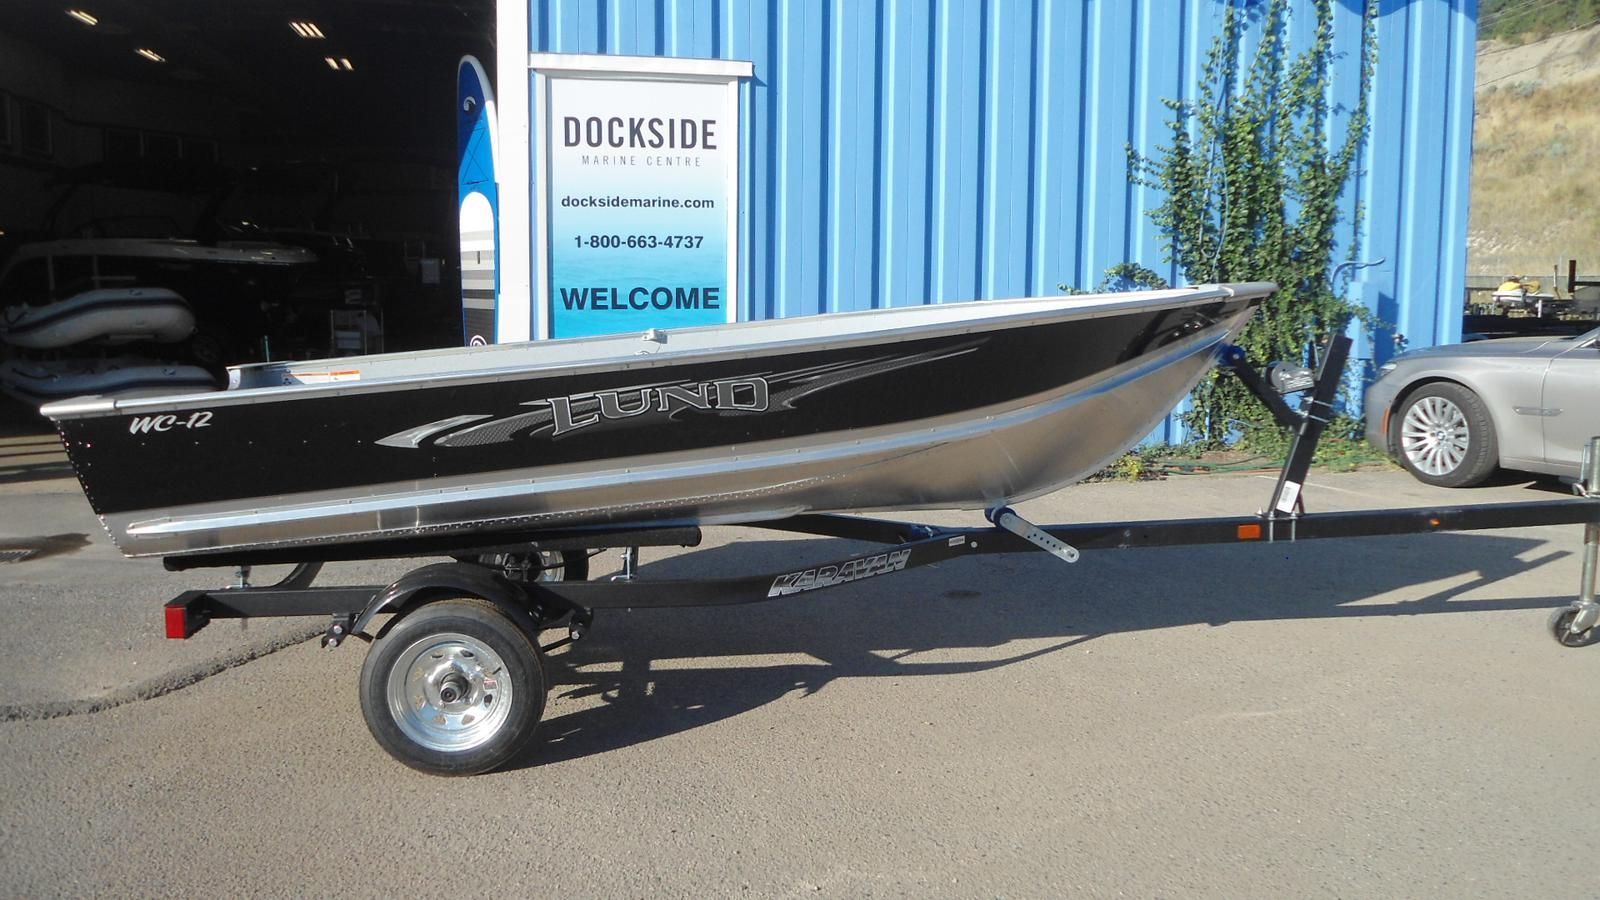 For Sale: 2017 Lund Wc 12 13ft<br/>Dockside Marine Centre, LTD.